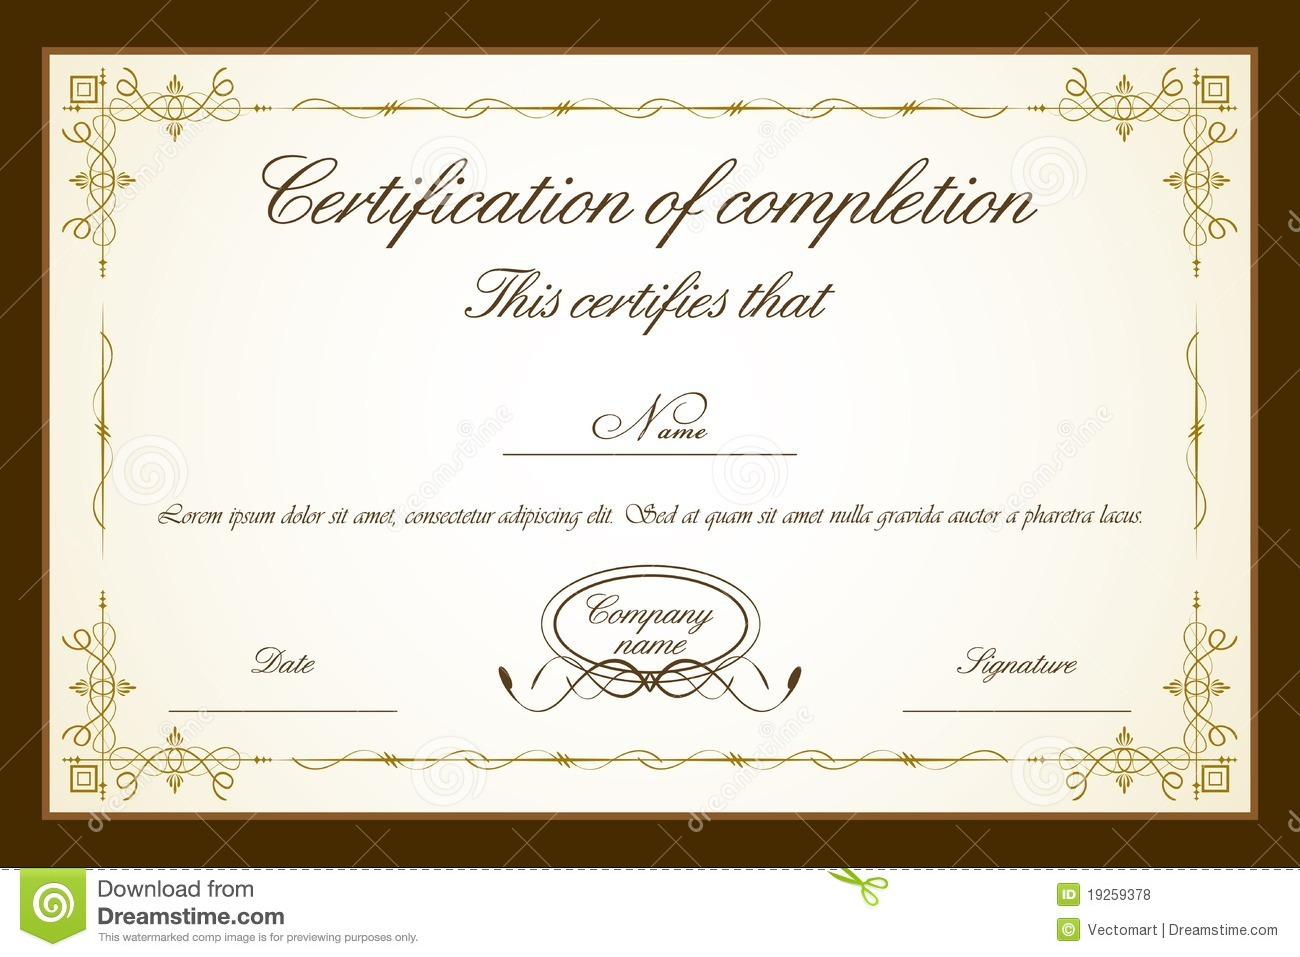 View certificate template certificate template royalty free stock photos image 19259378 yadclub Gallery